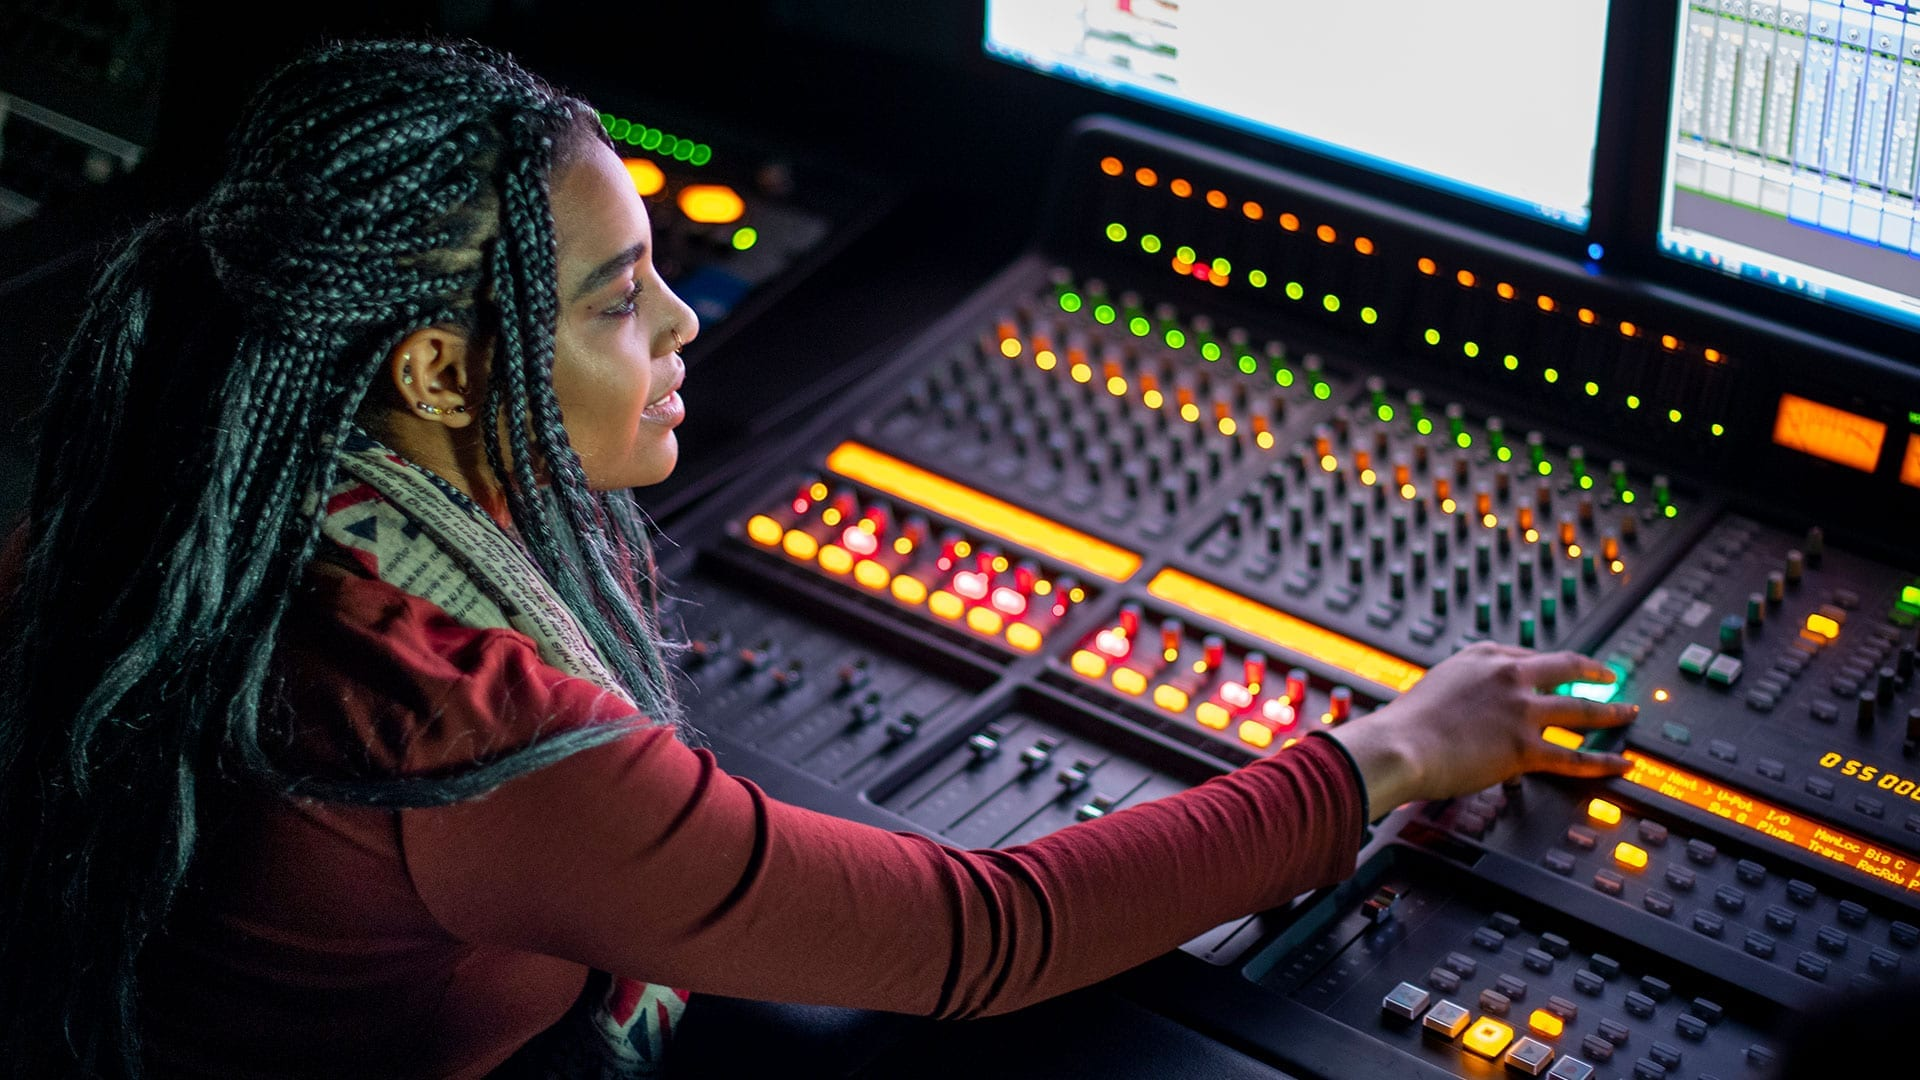 Student working at sound board